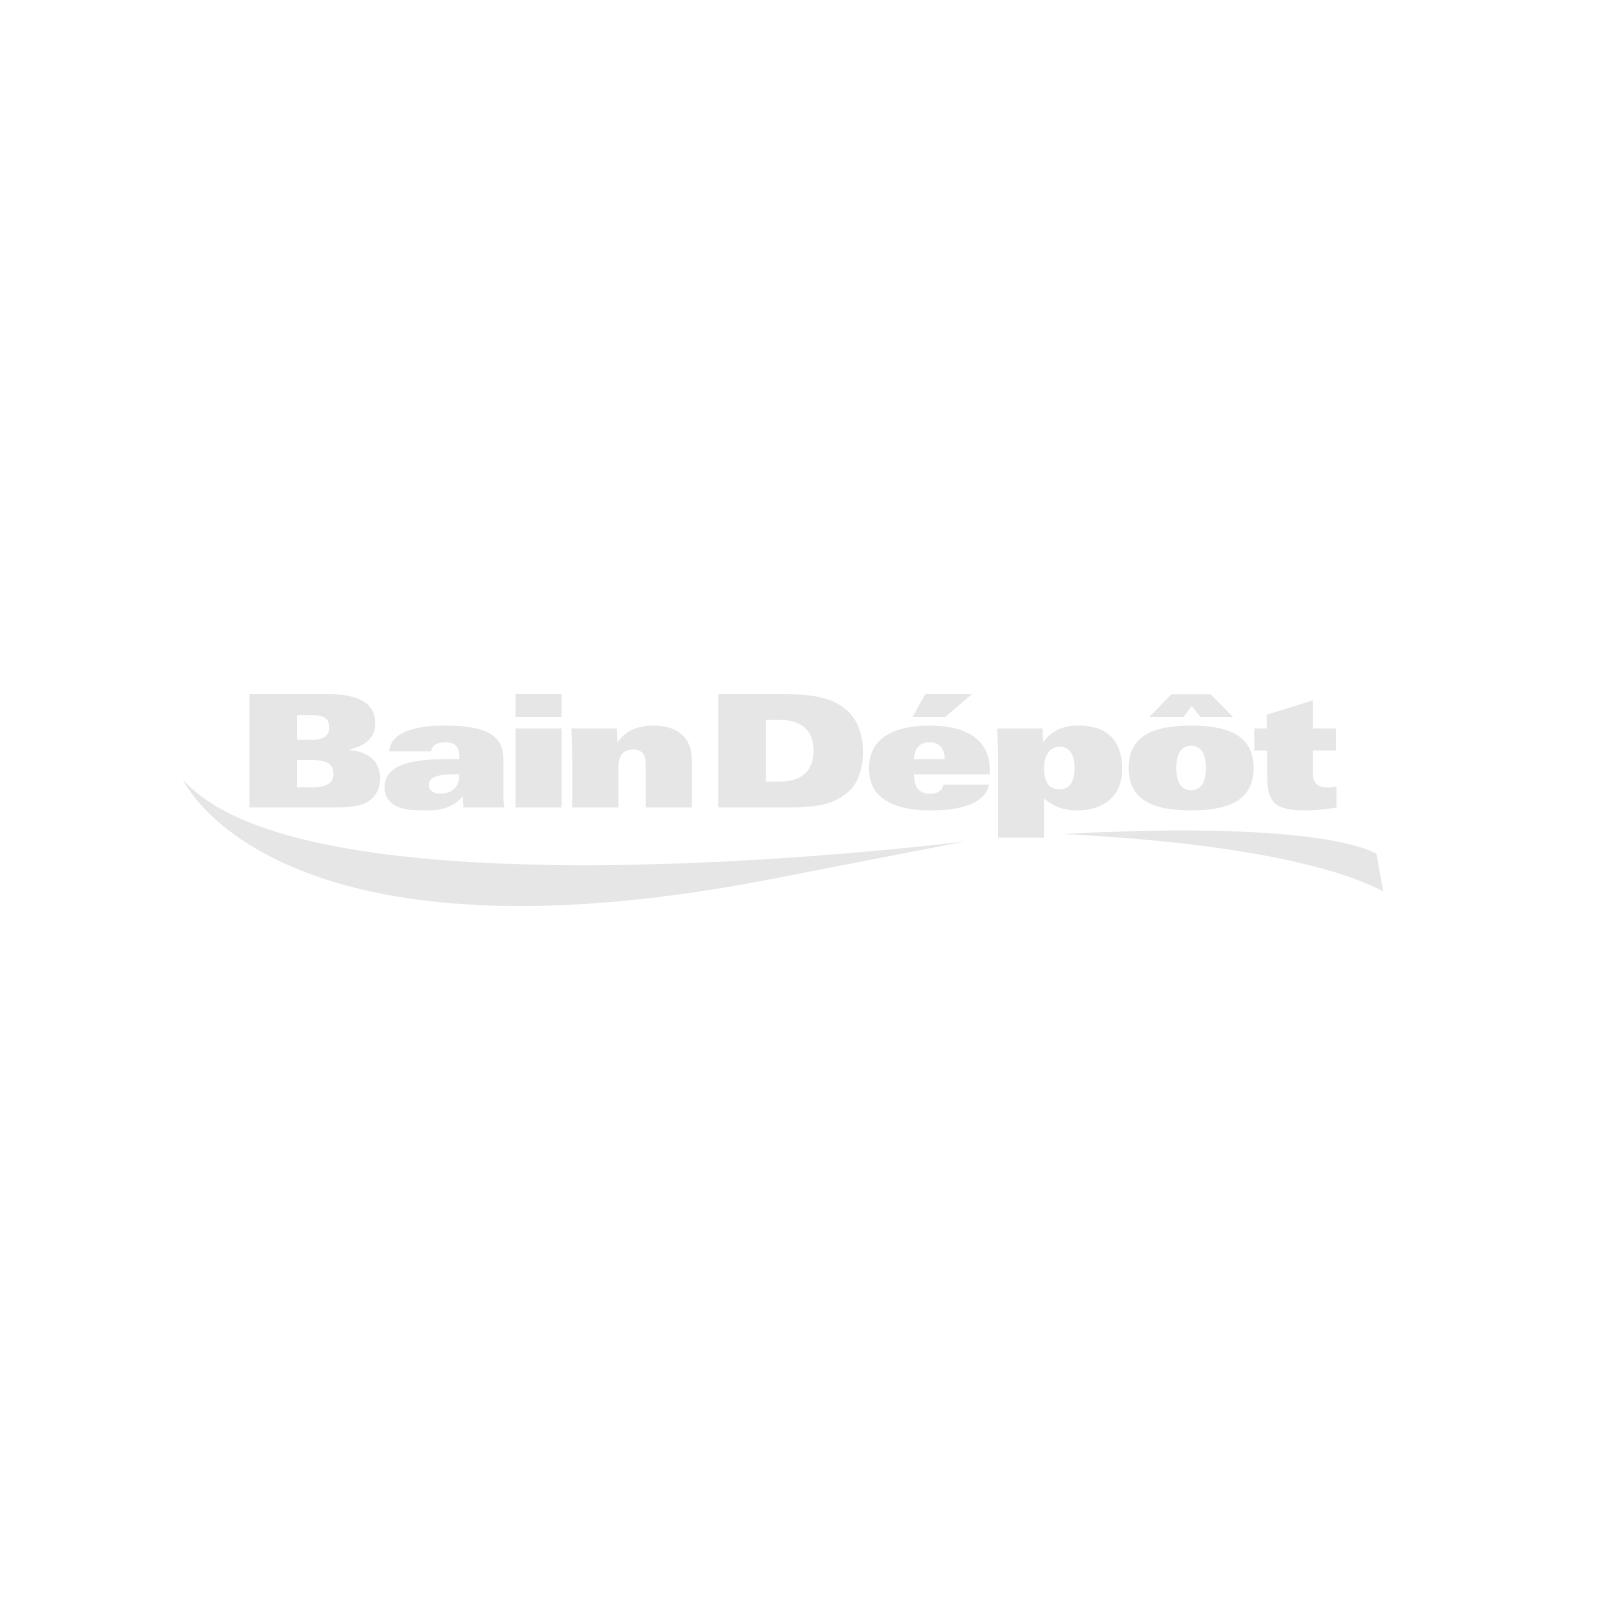 3-piece white bathroom accessory set